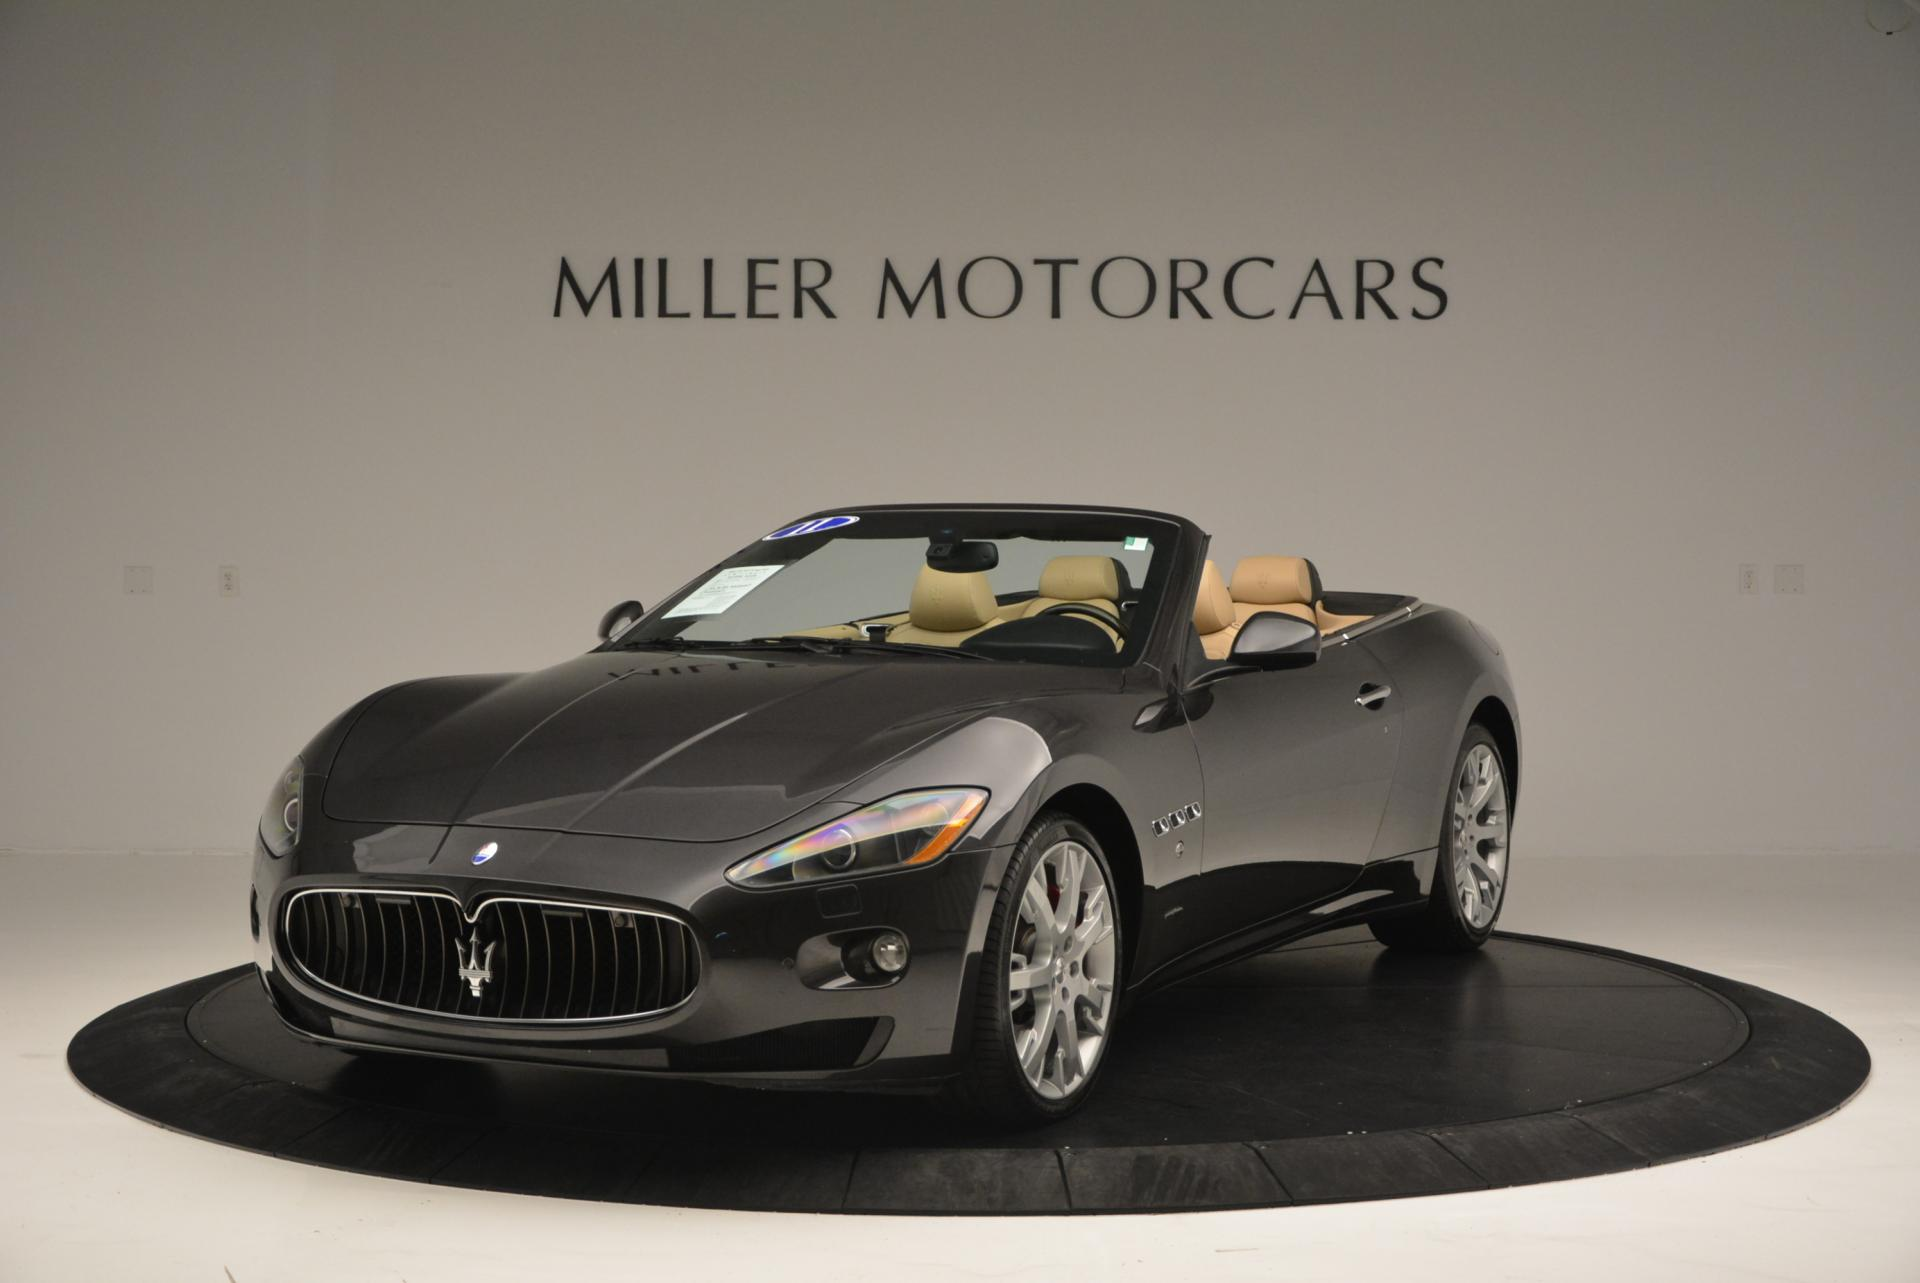 Used 2011 Maserati GranTurismo Base for sale Sold at Aston Martin of Greenwich in Greenwich CT 06830 1